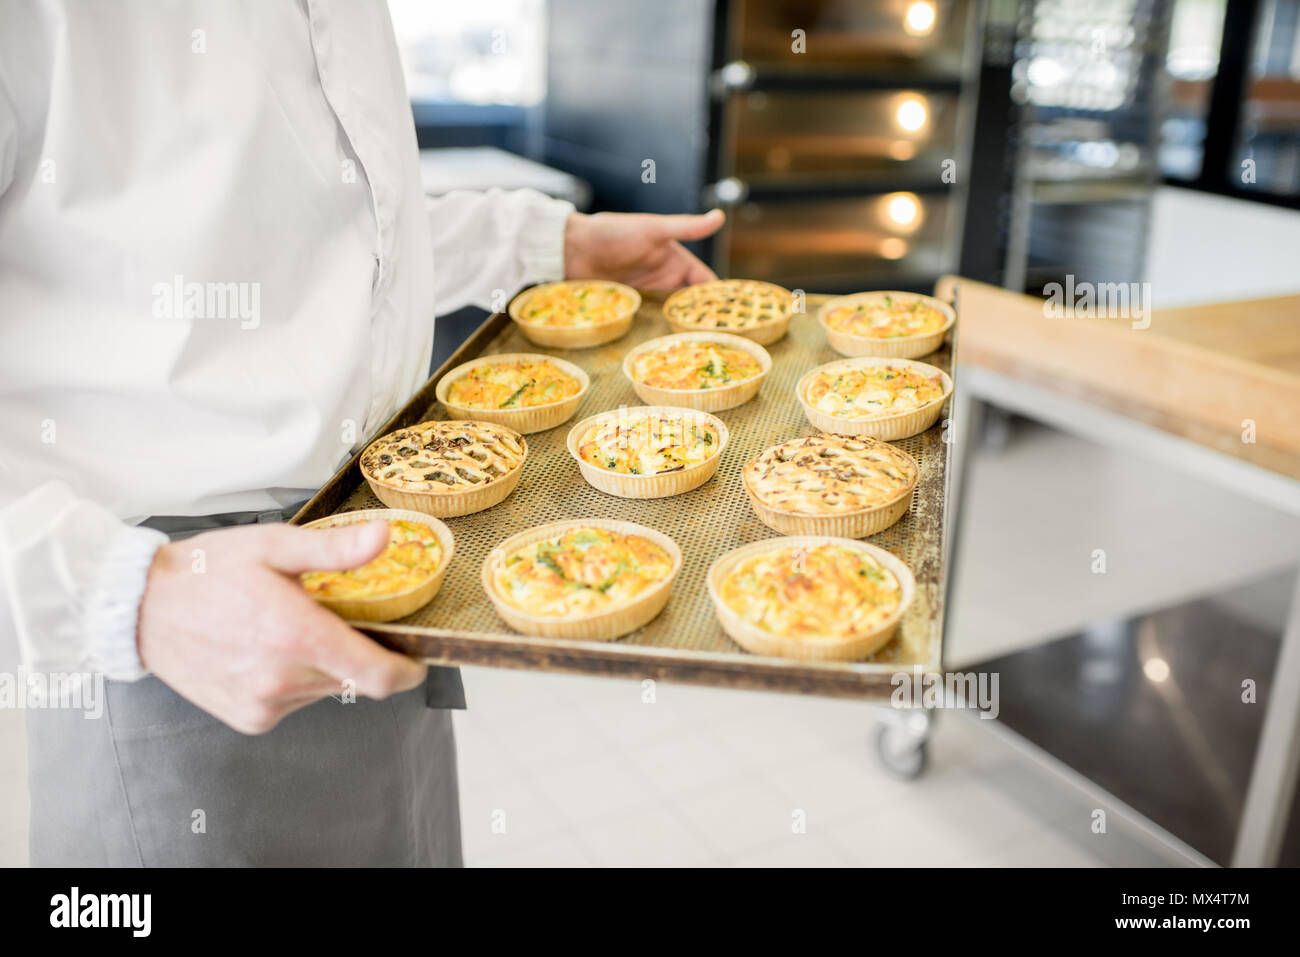 Holding tray with freshly baked buns - Stock Image